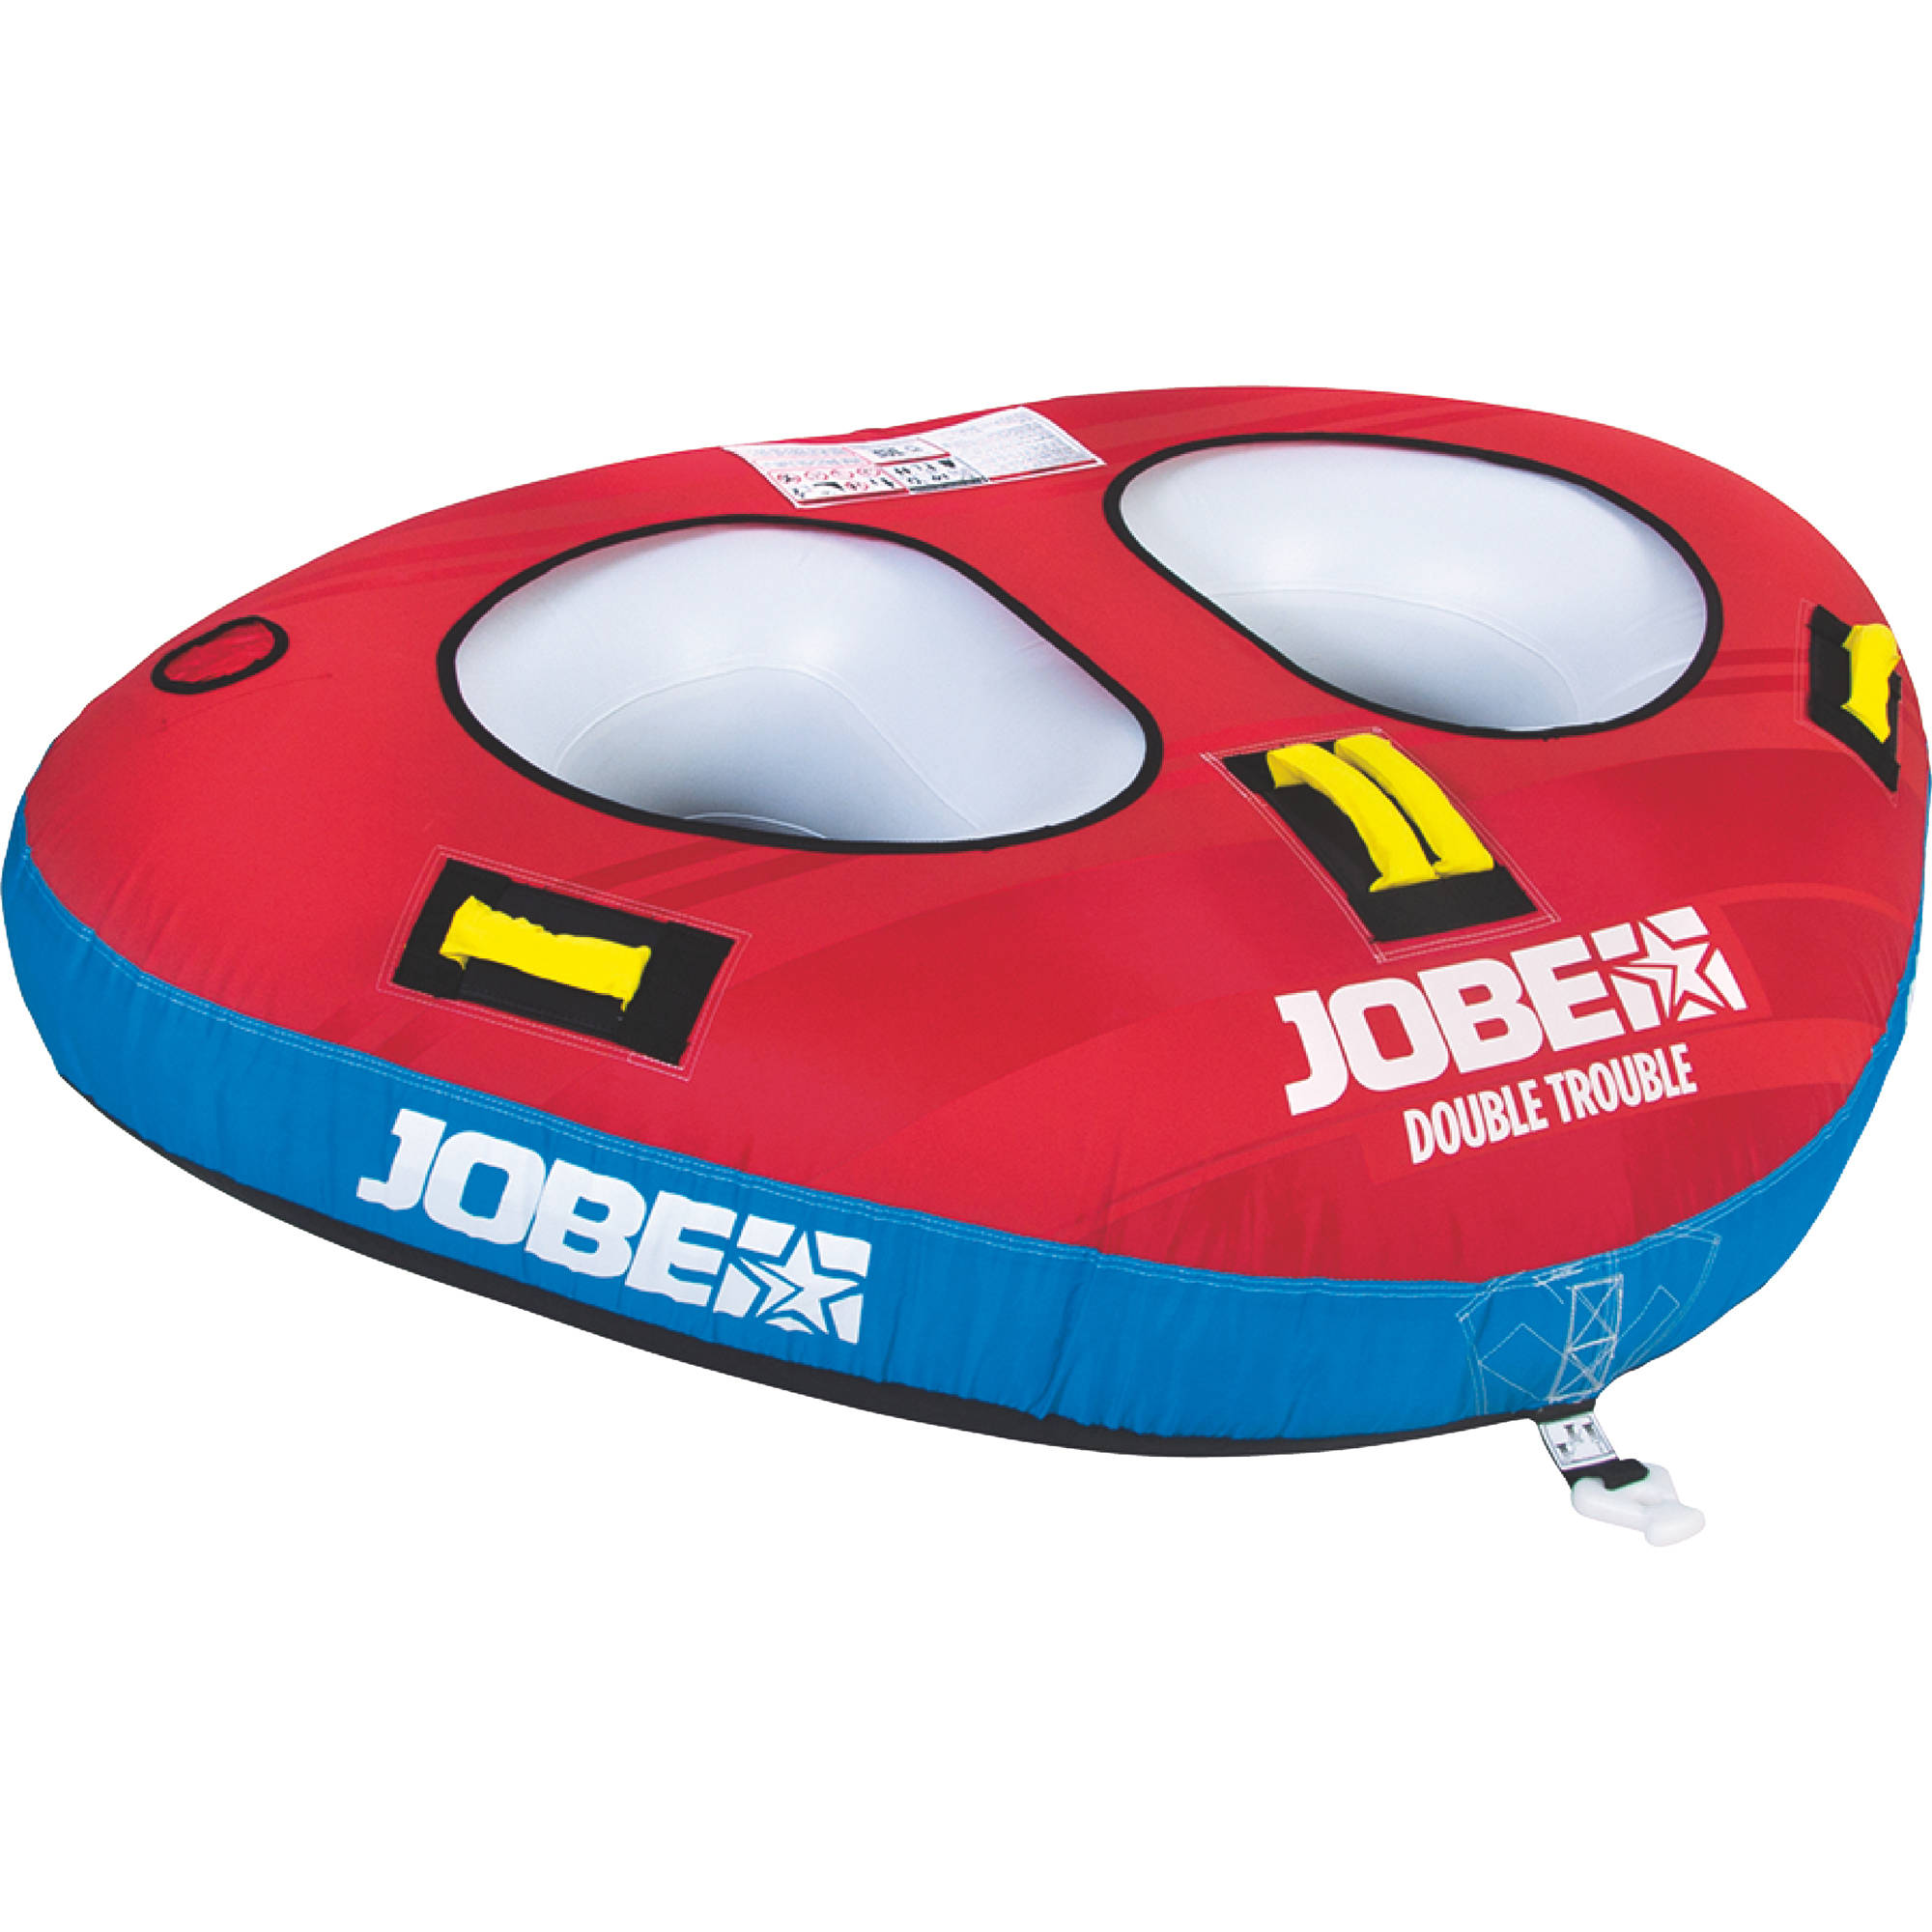 Jobe Double Trouble Towable Tube, 2 Person by Jobe Sports